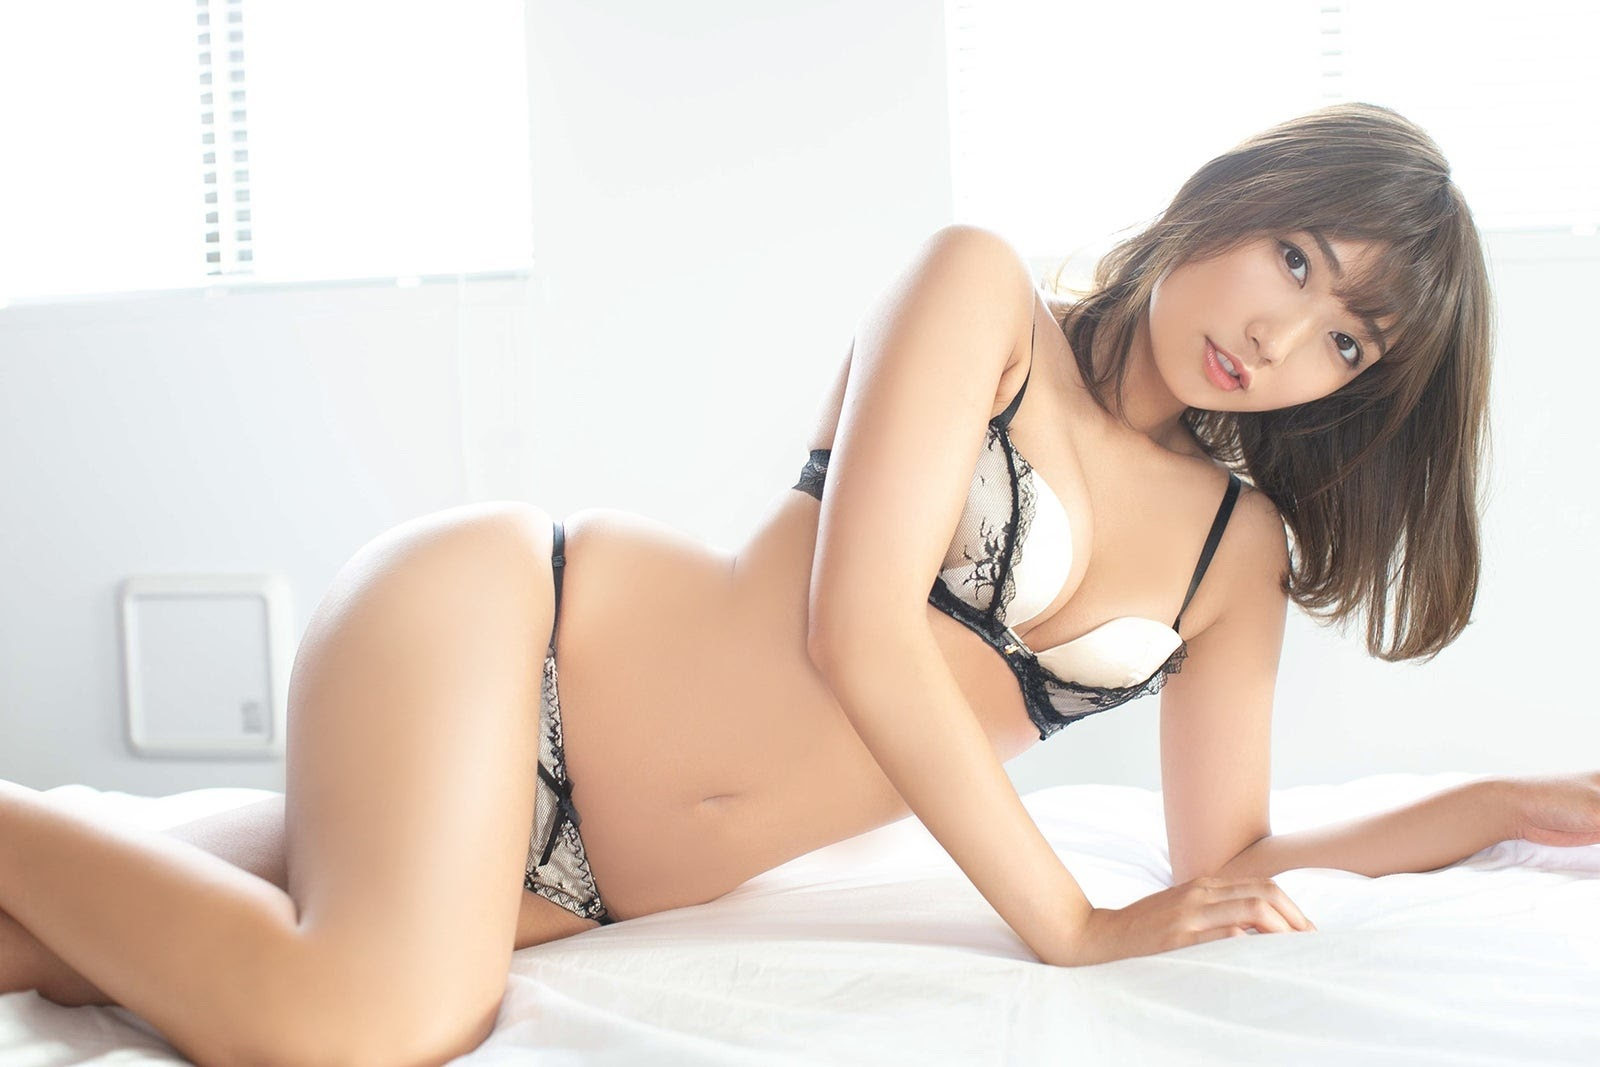 Neo Gal staying date with her Mea Shimotsuki gravure swimsuit image sheets 2020002